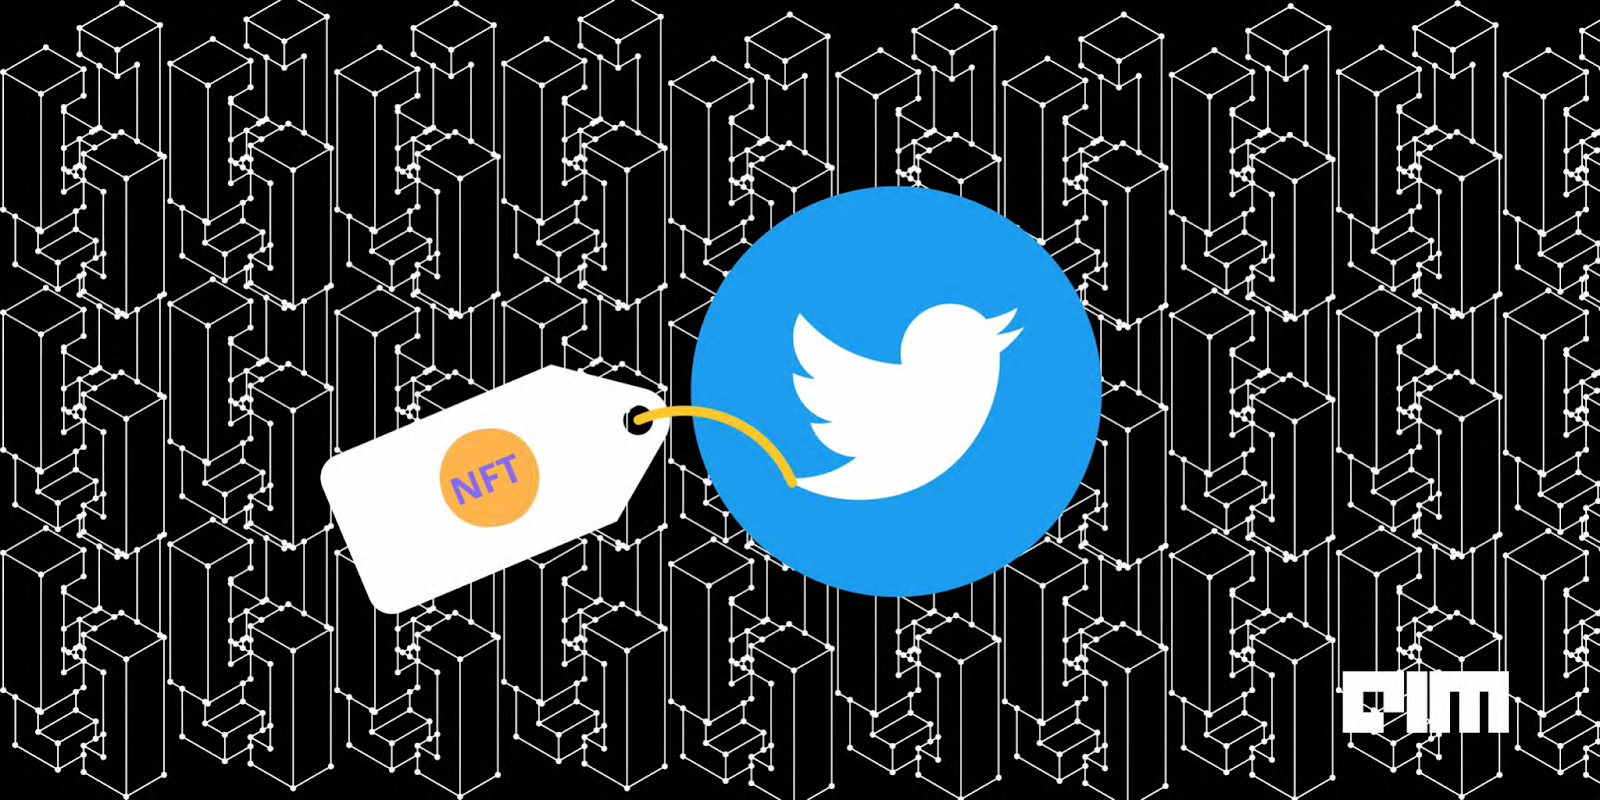 Twitter Is 'Dropping NFTs All Day'